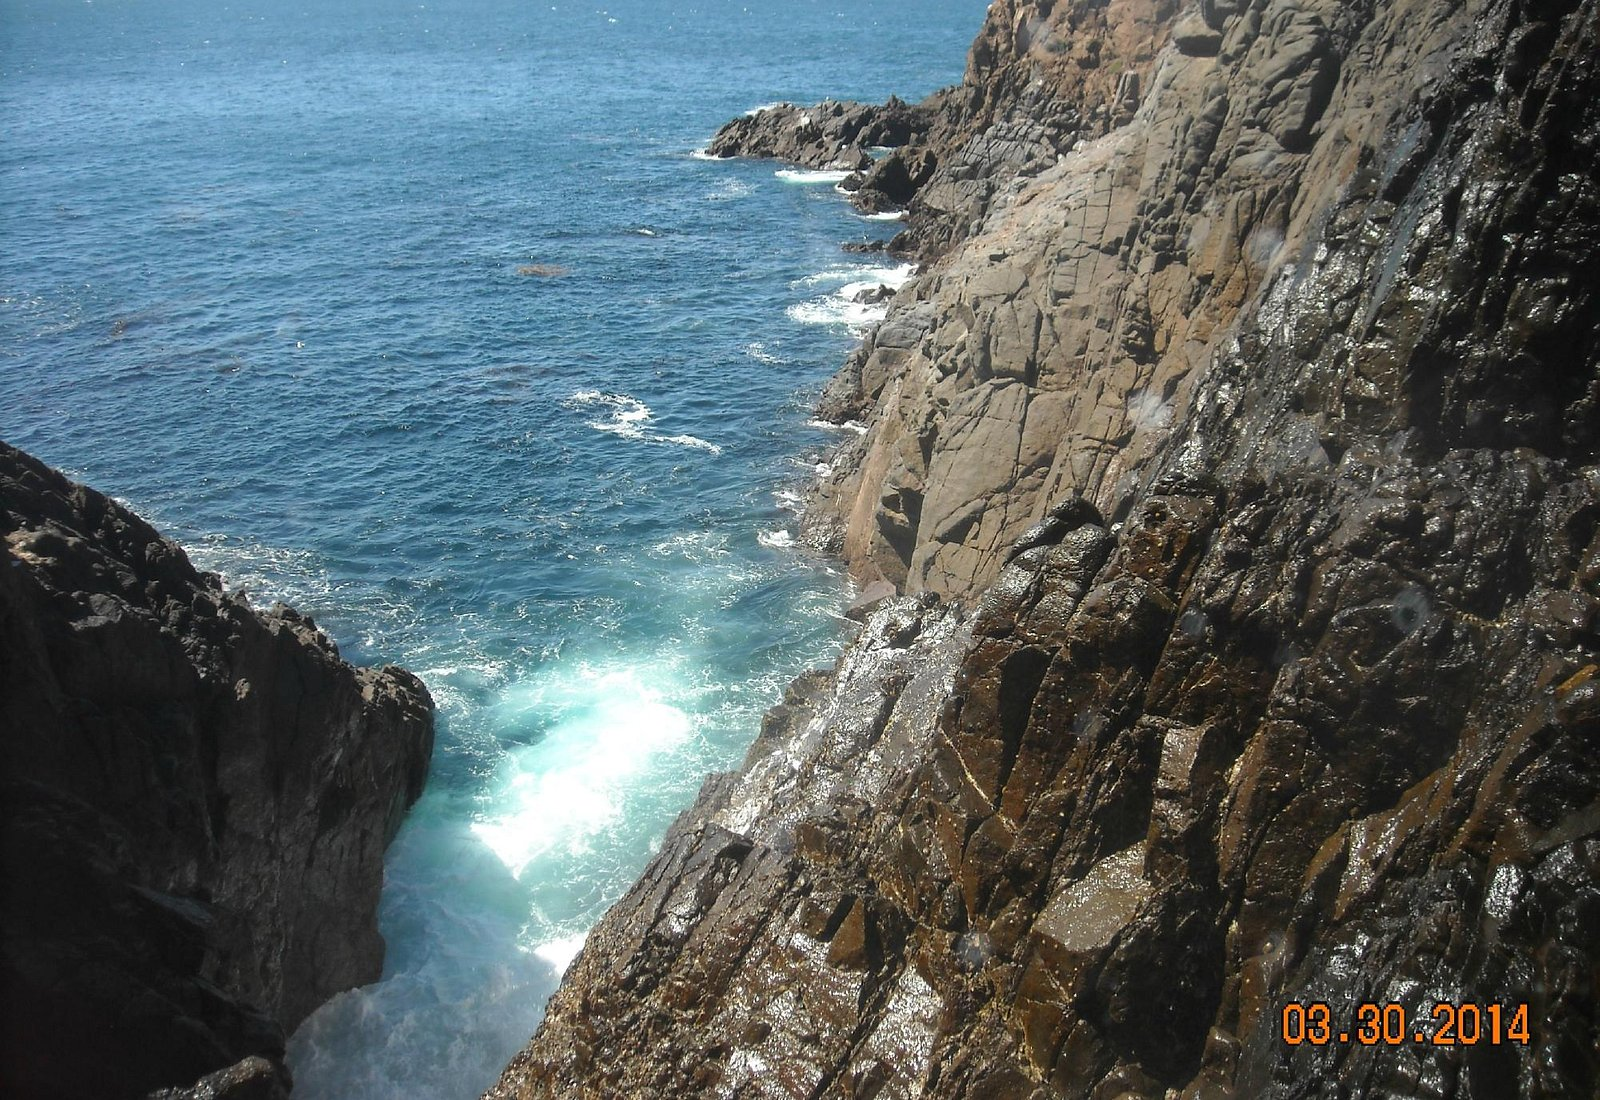 The blowhole starting to rumble